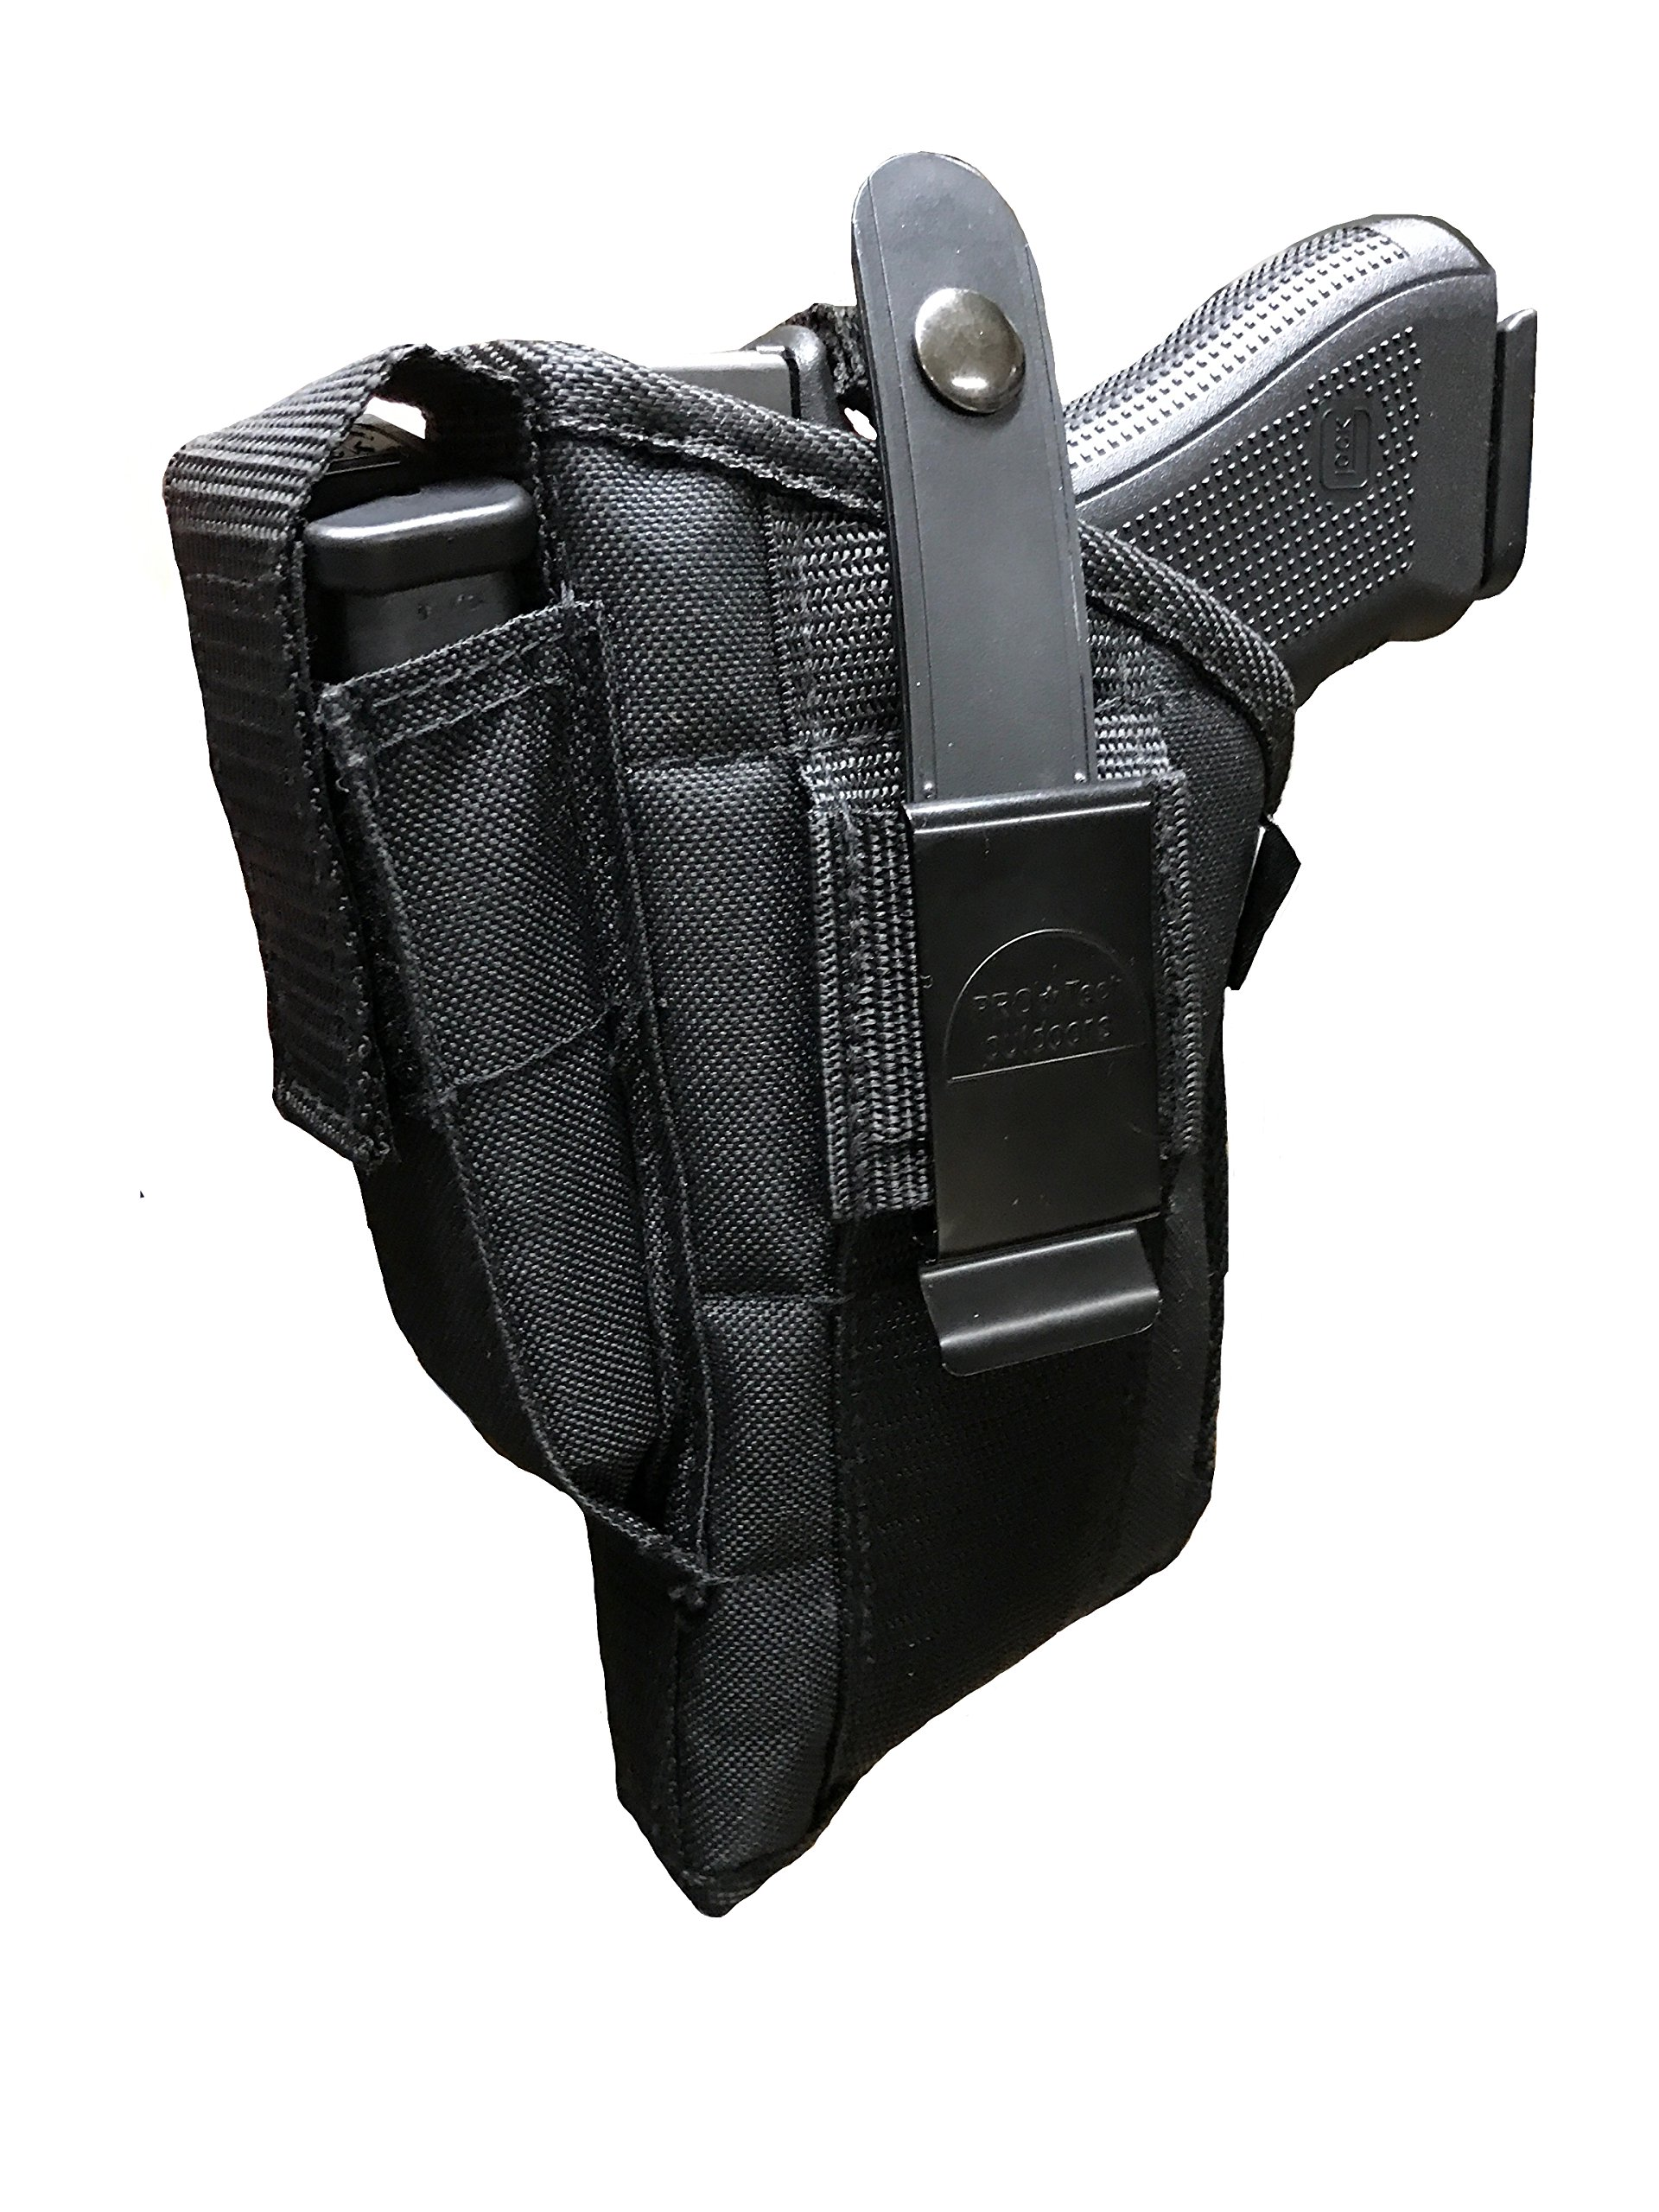 This Gun Holster Fits Large and Medium Frame Auto with Lazer Attached For Ruger, Smith and Wesson,Springfield Armory,Beretta,Glock,H&K,Sig Sauer, Taurus, Walther and more.